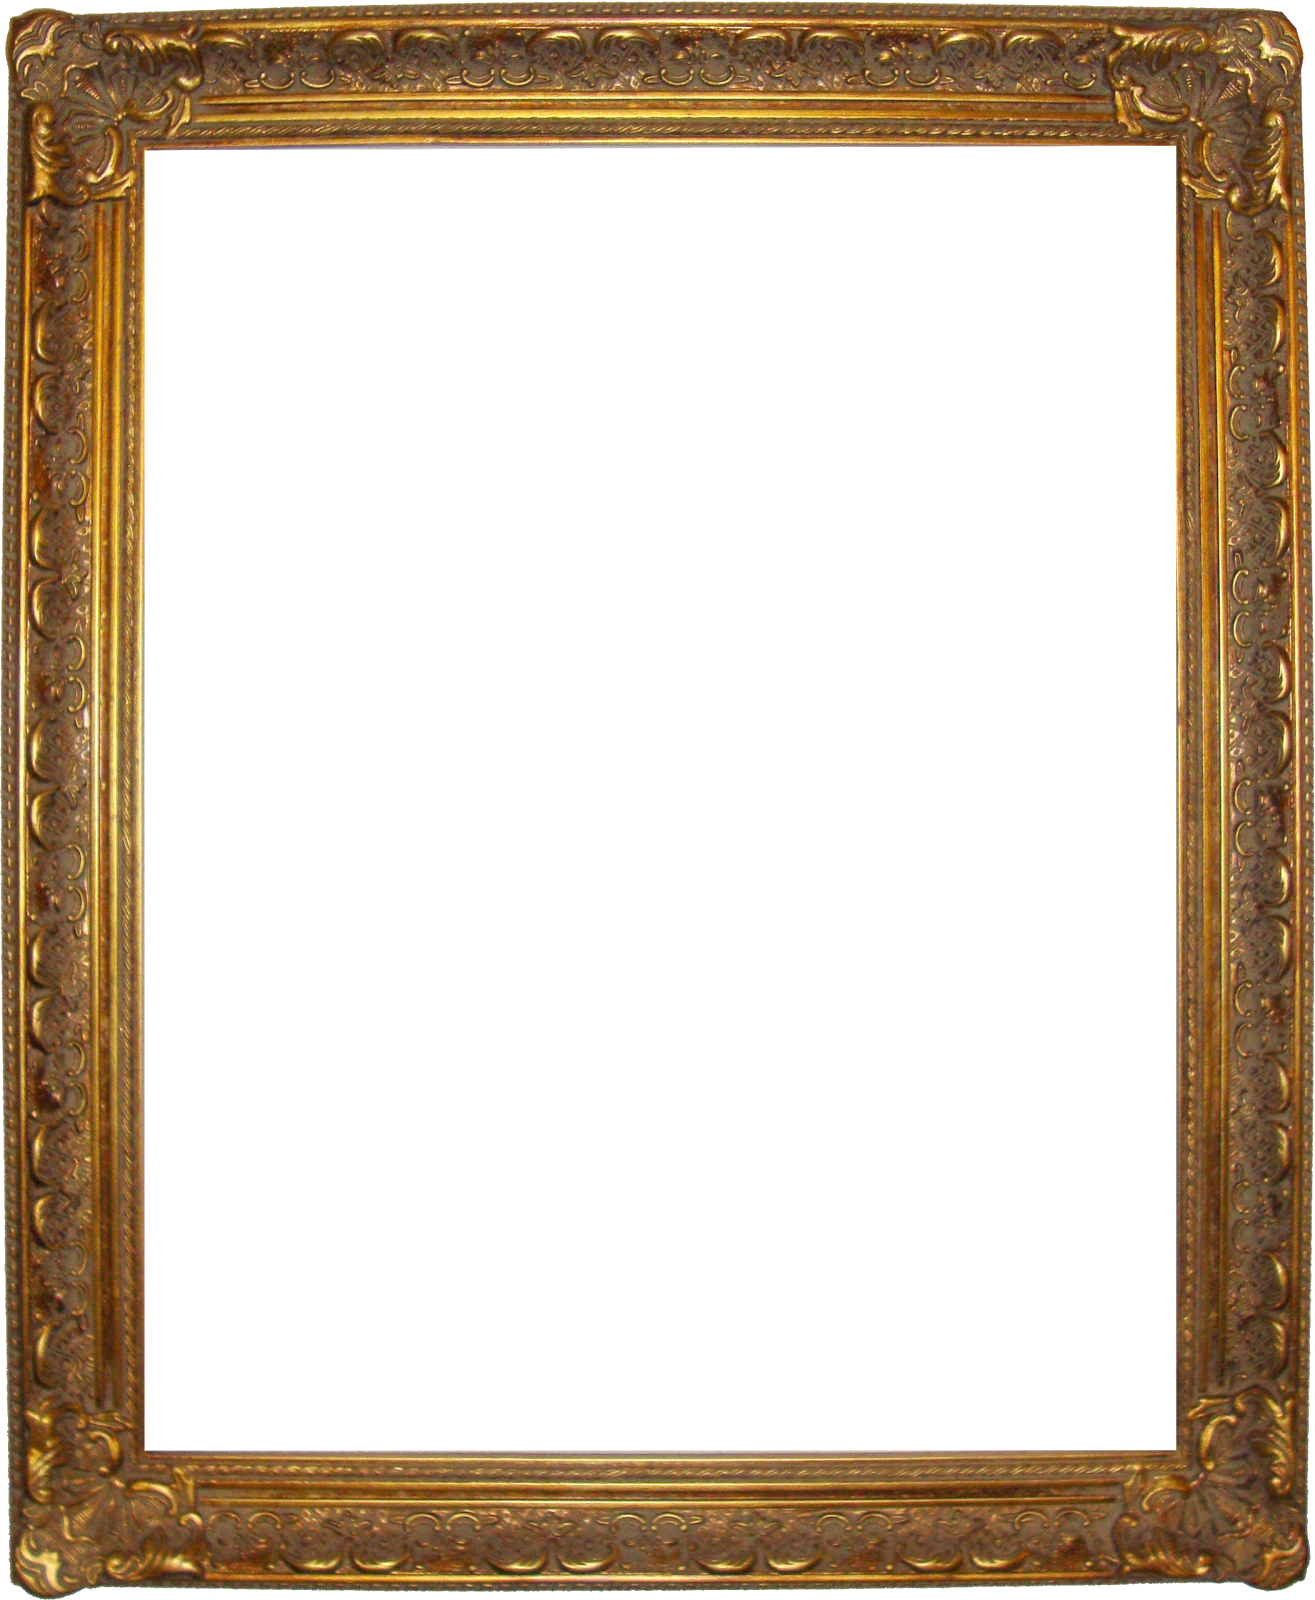 gold frame, doodlecraft bie fancy vintage ornate digital frames #25134